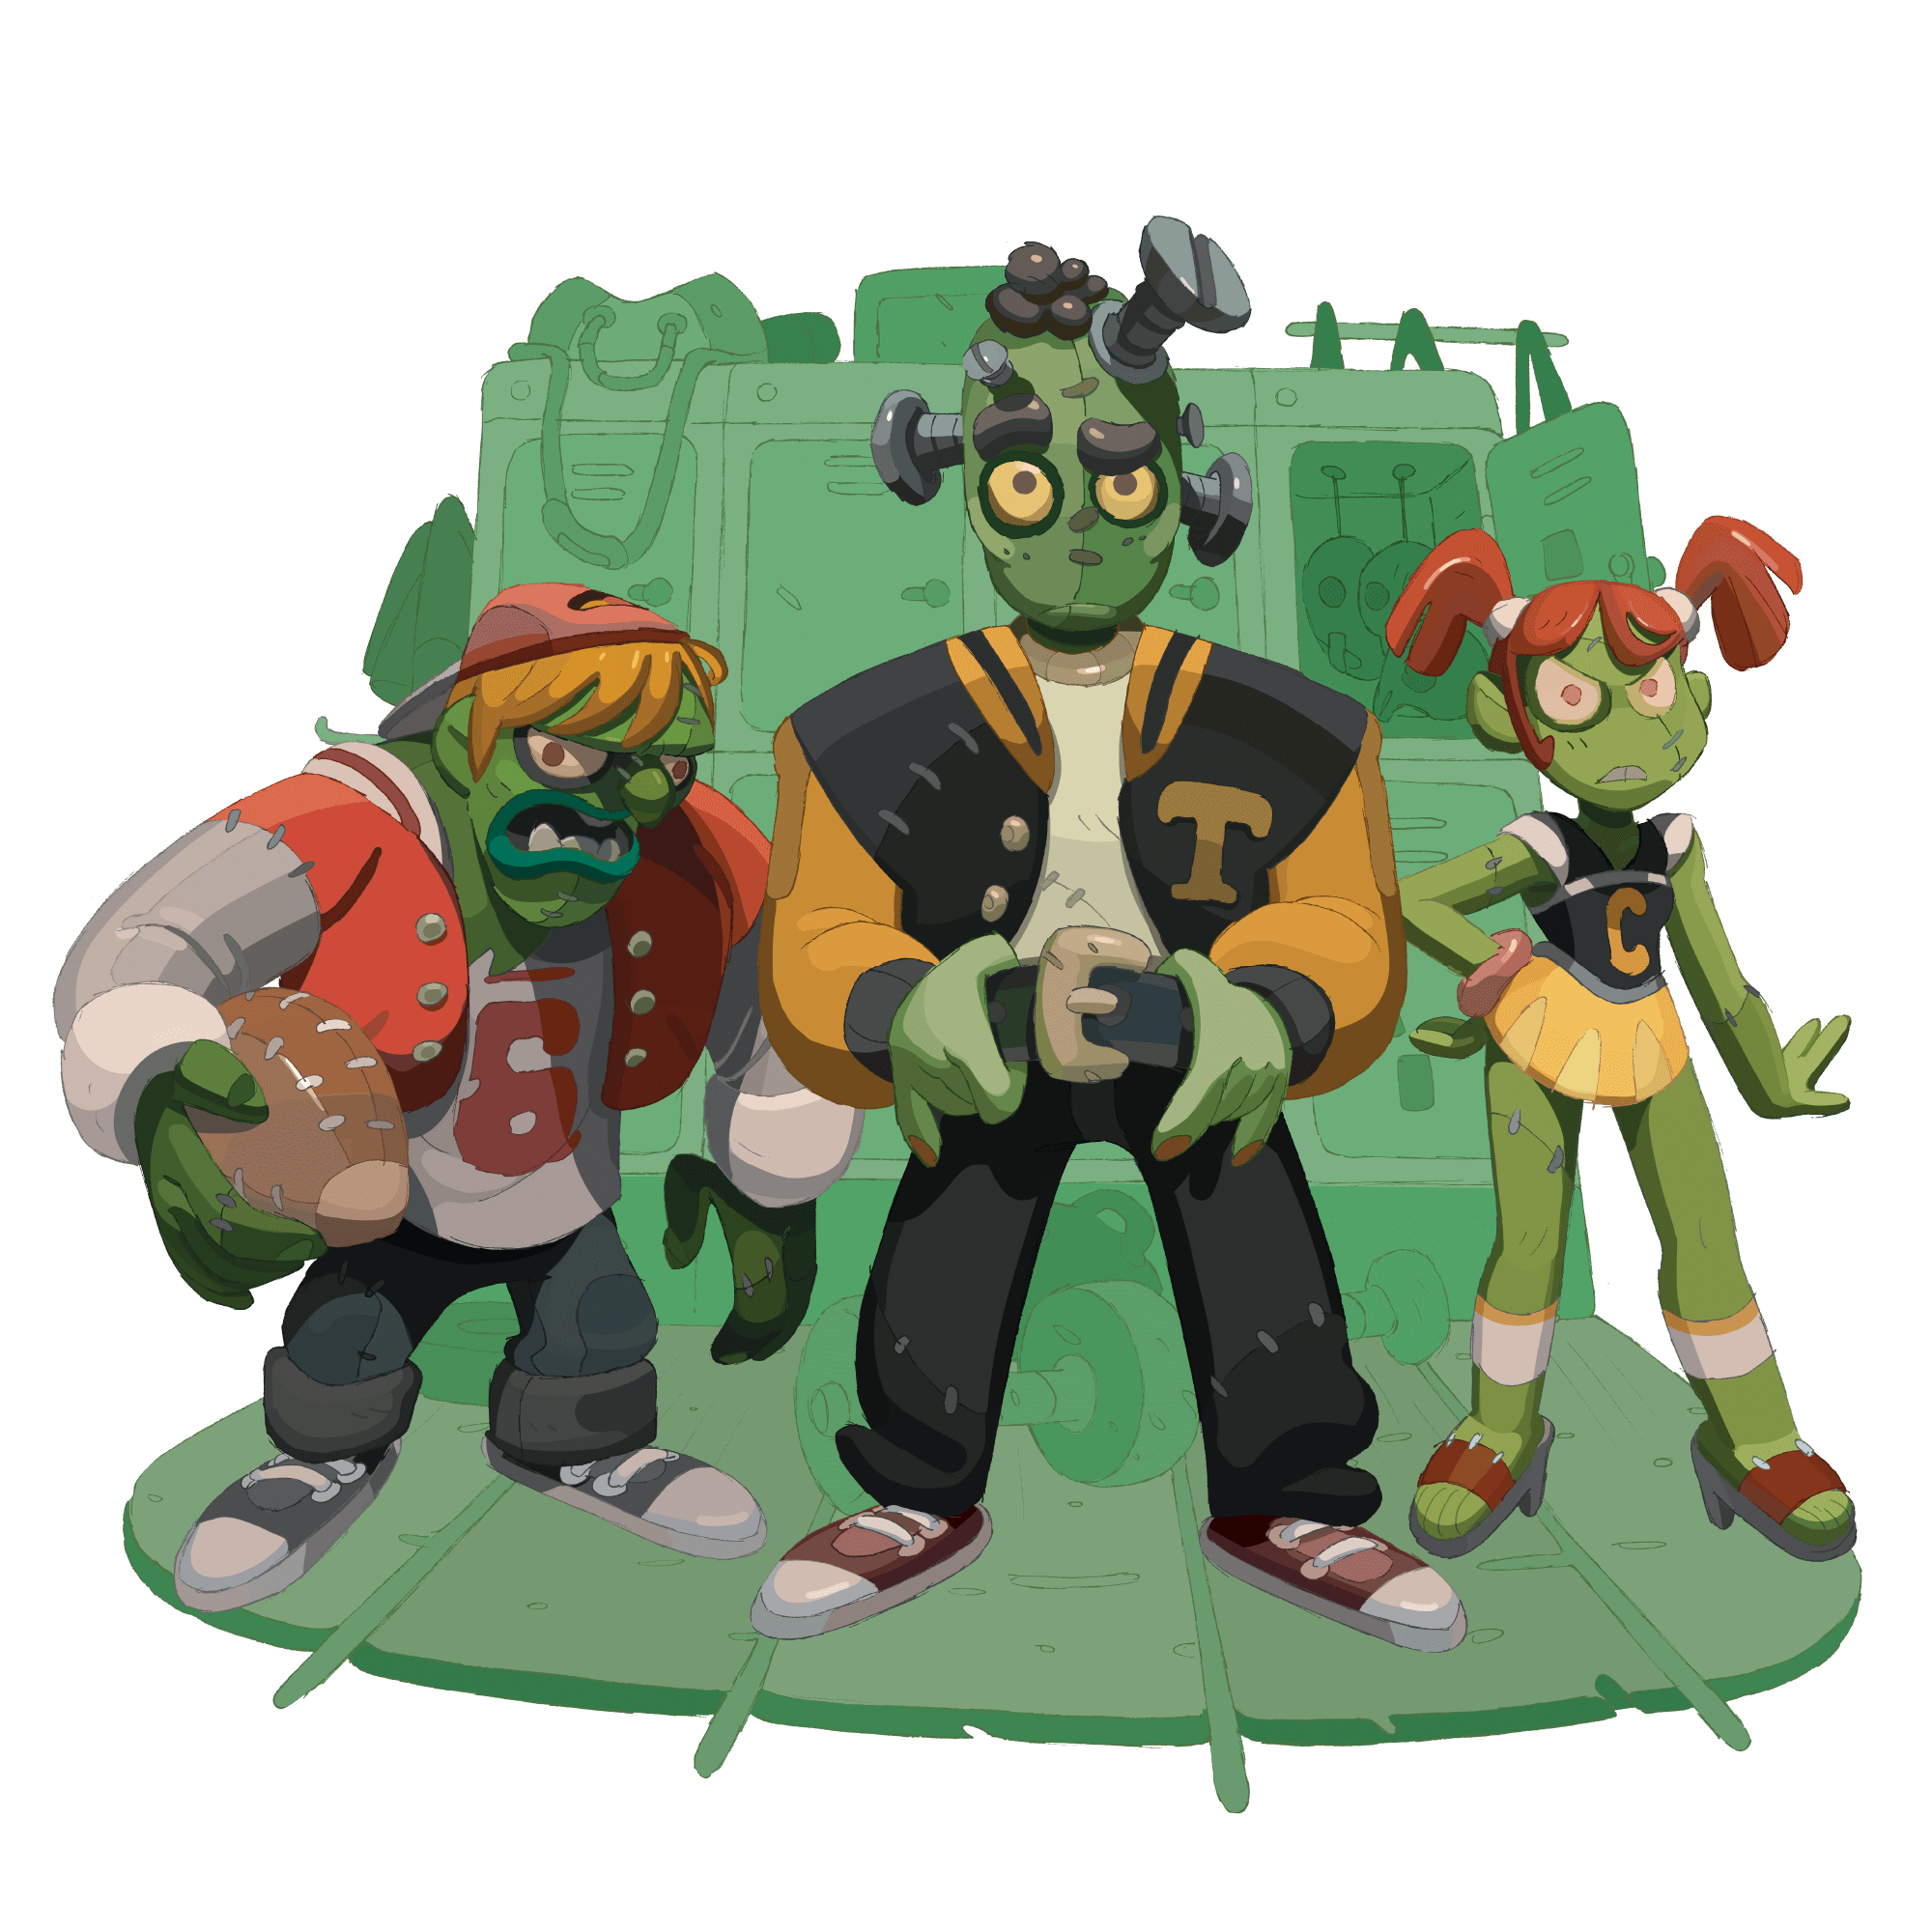 Three stylized frankensteins monsters standing in front of an abstract school background.